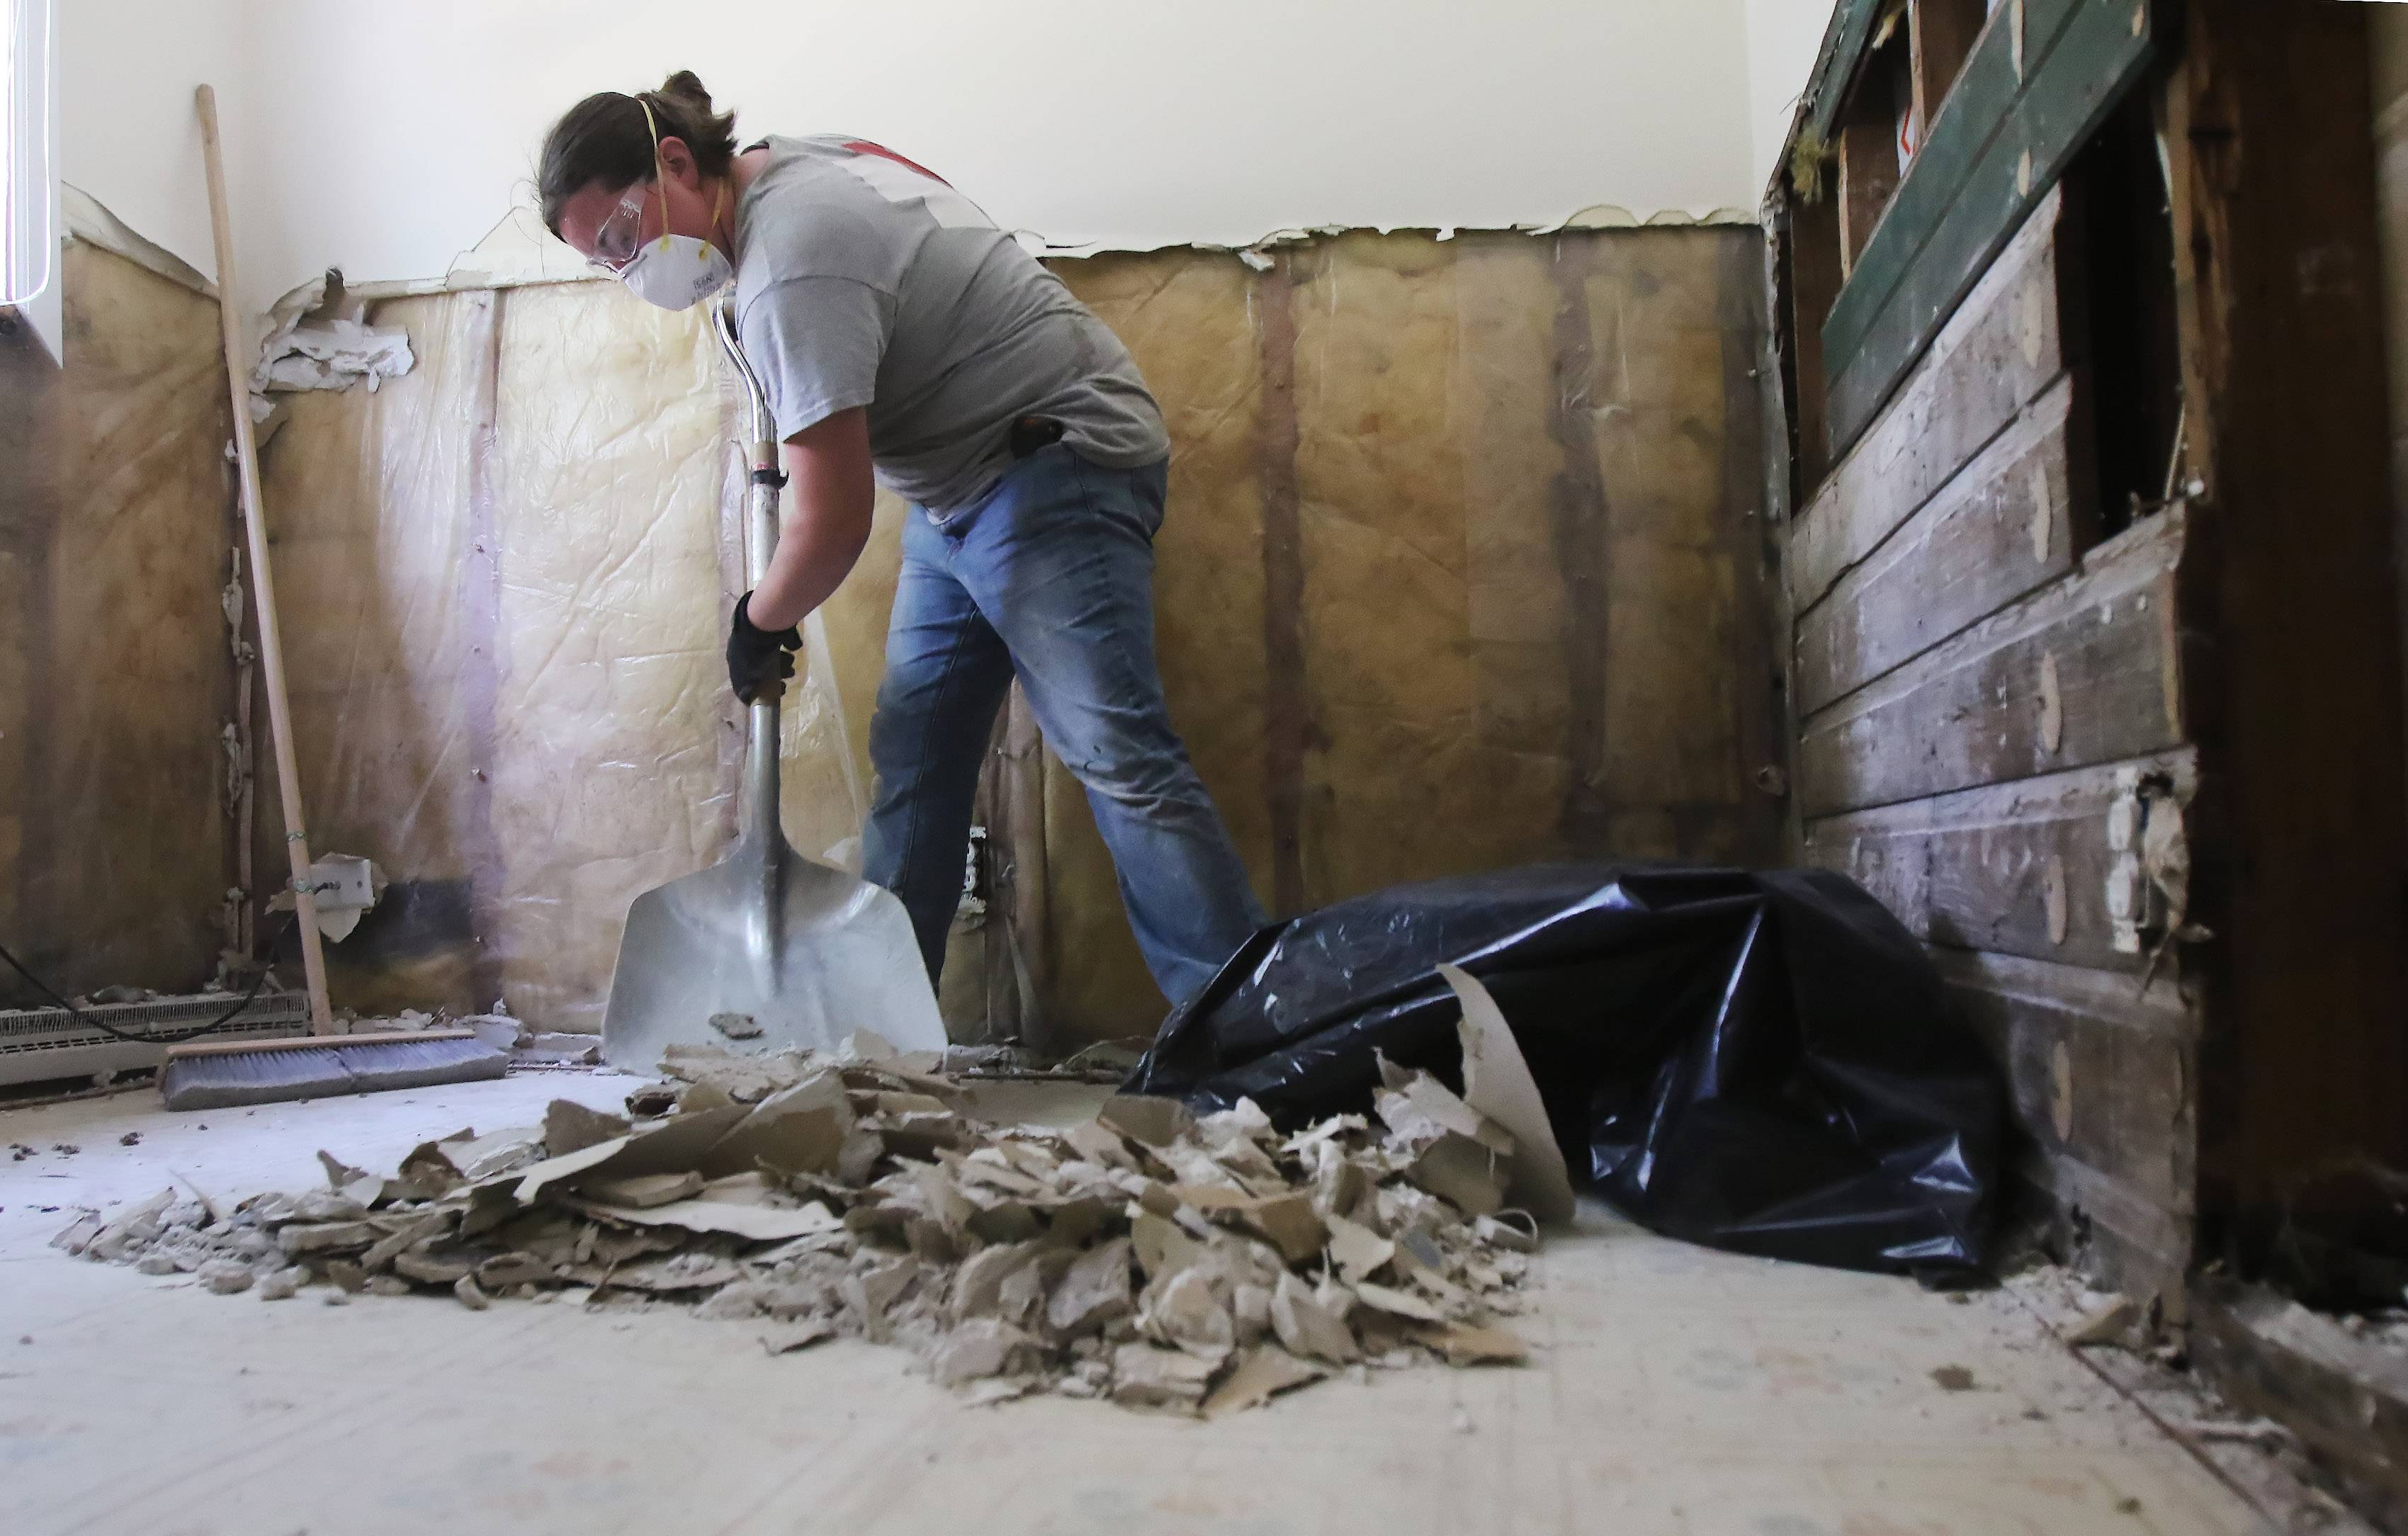 Casey Magoon of Wonder Lake shovels ruined drywall into a trash bag as part of Team Rubicon.